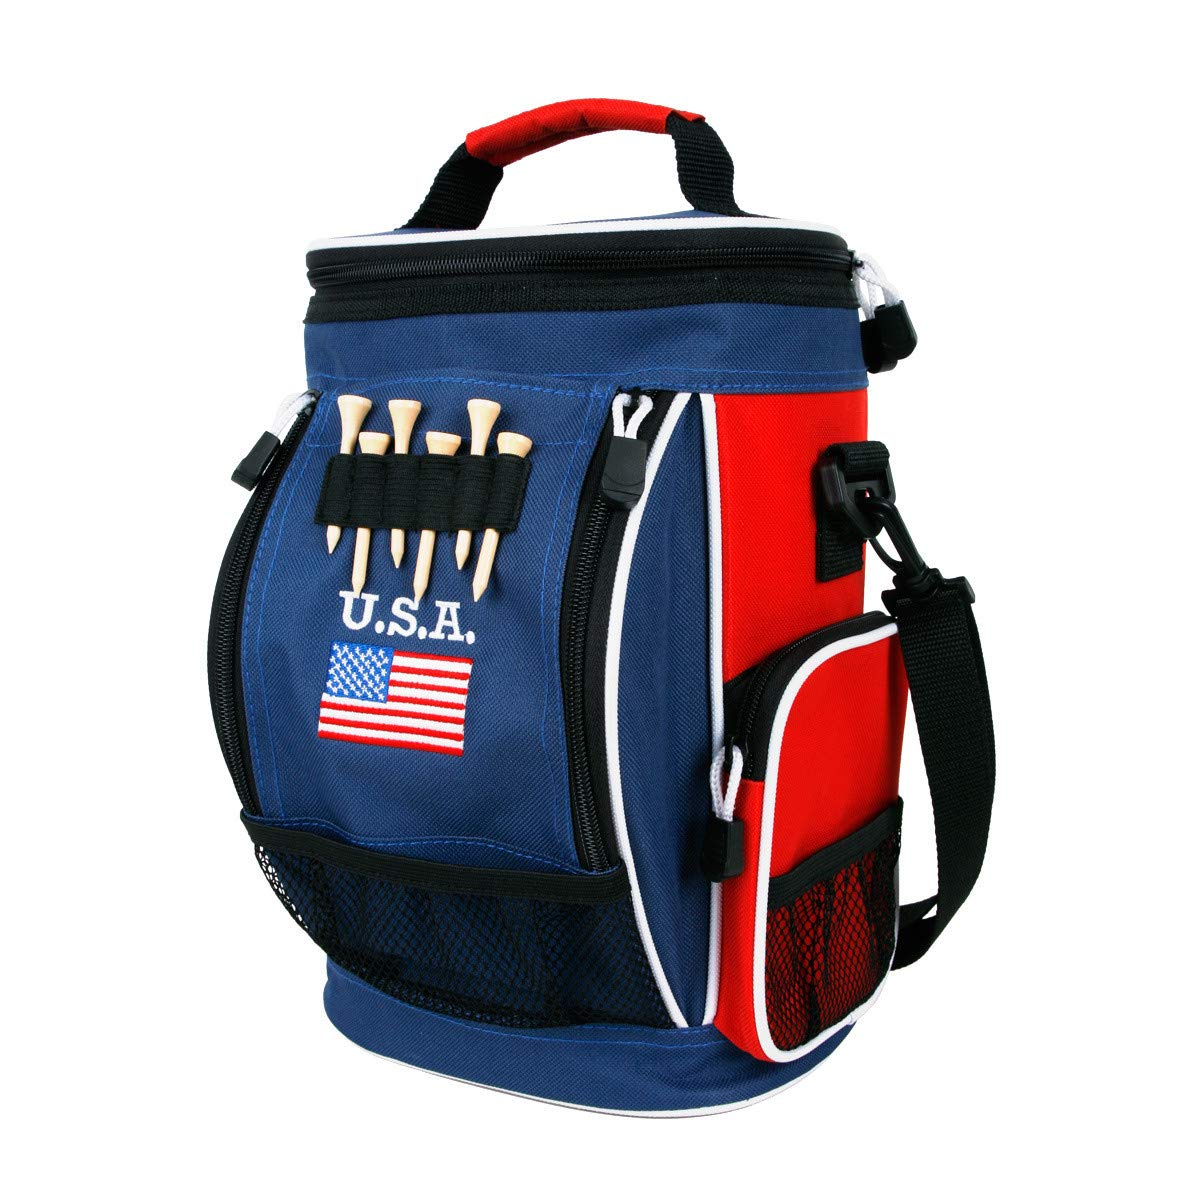 Intech USA Golf Bag Cooler and Accessory Caddy by Intech